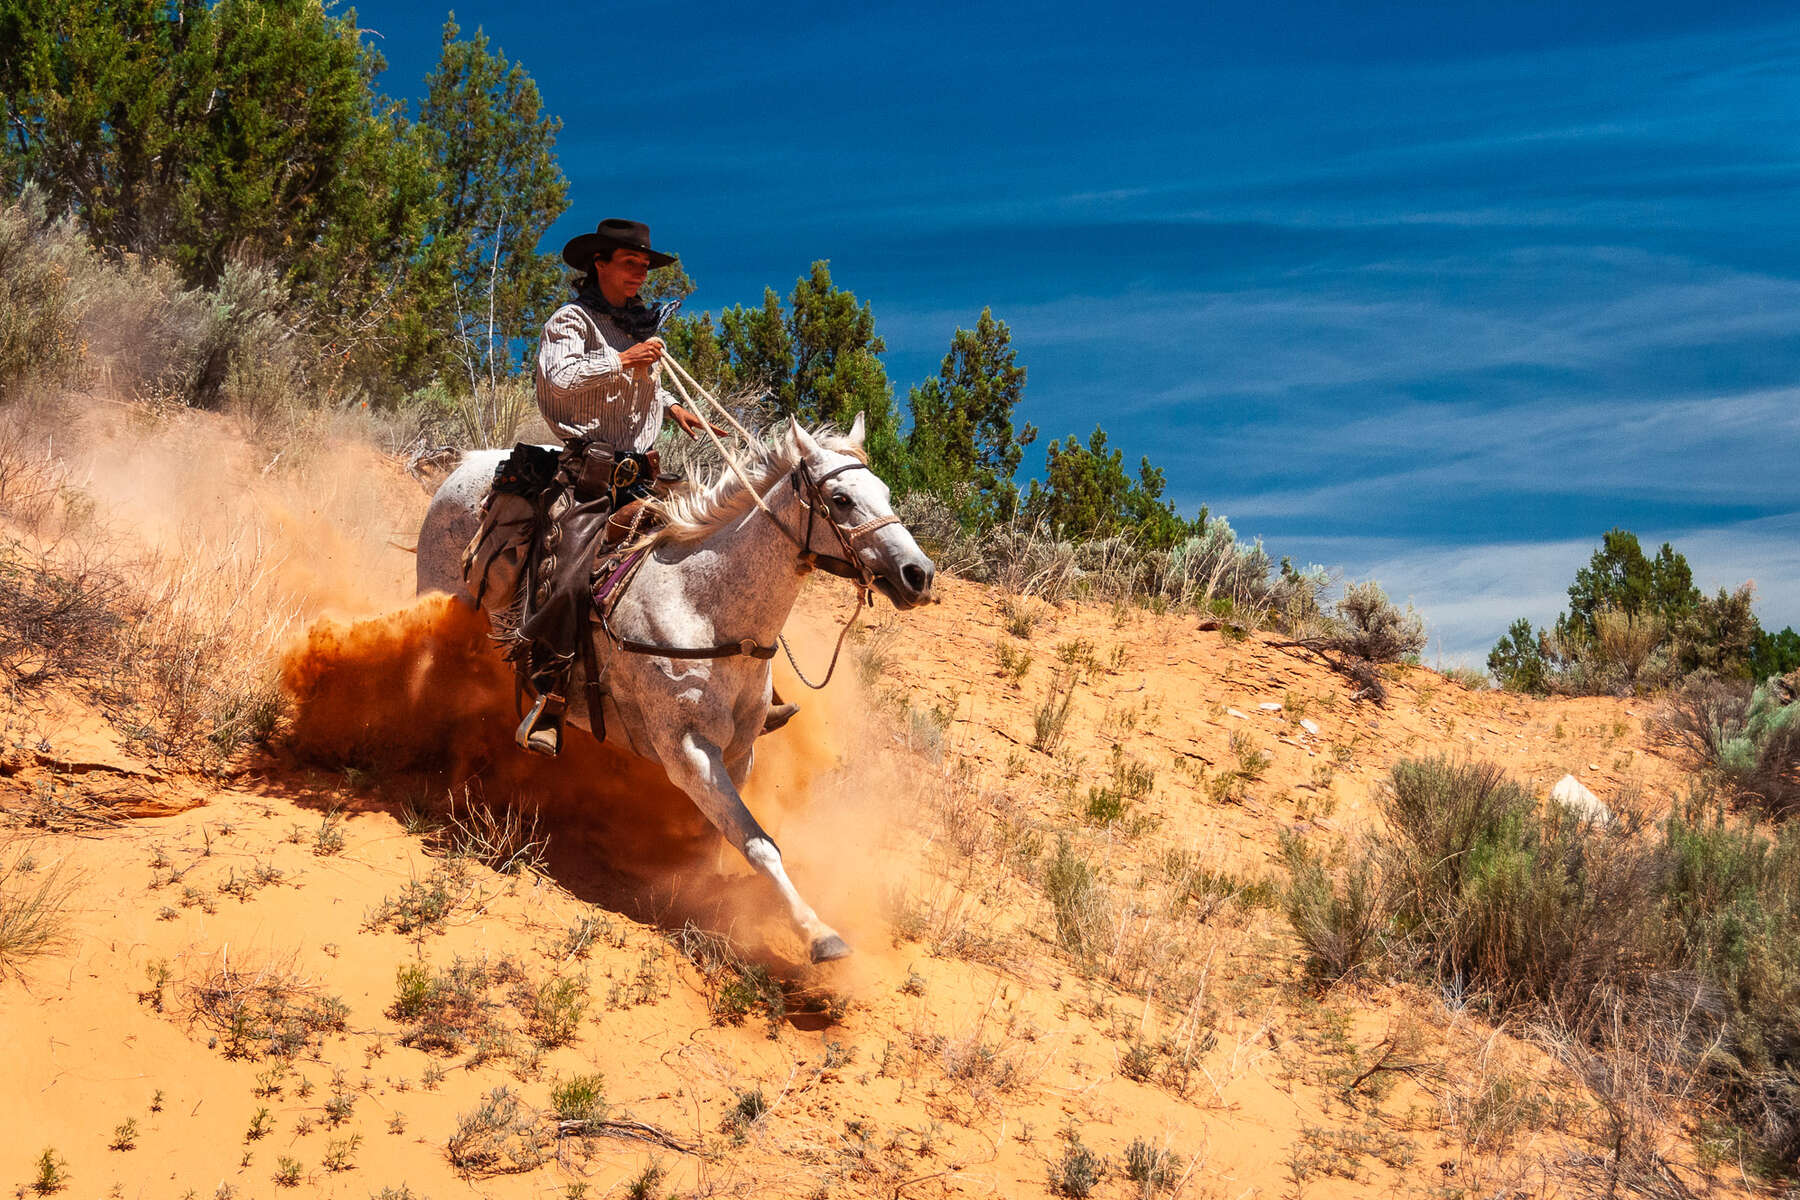 Trail ride through the old Wild West America